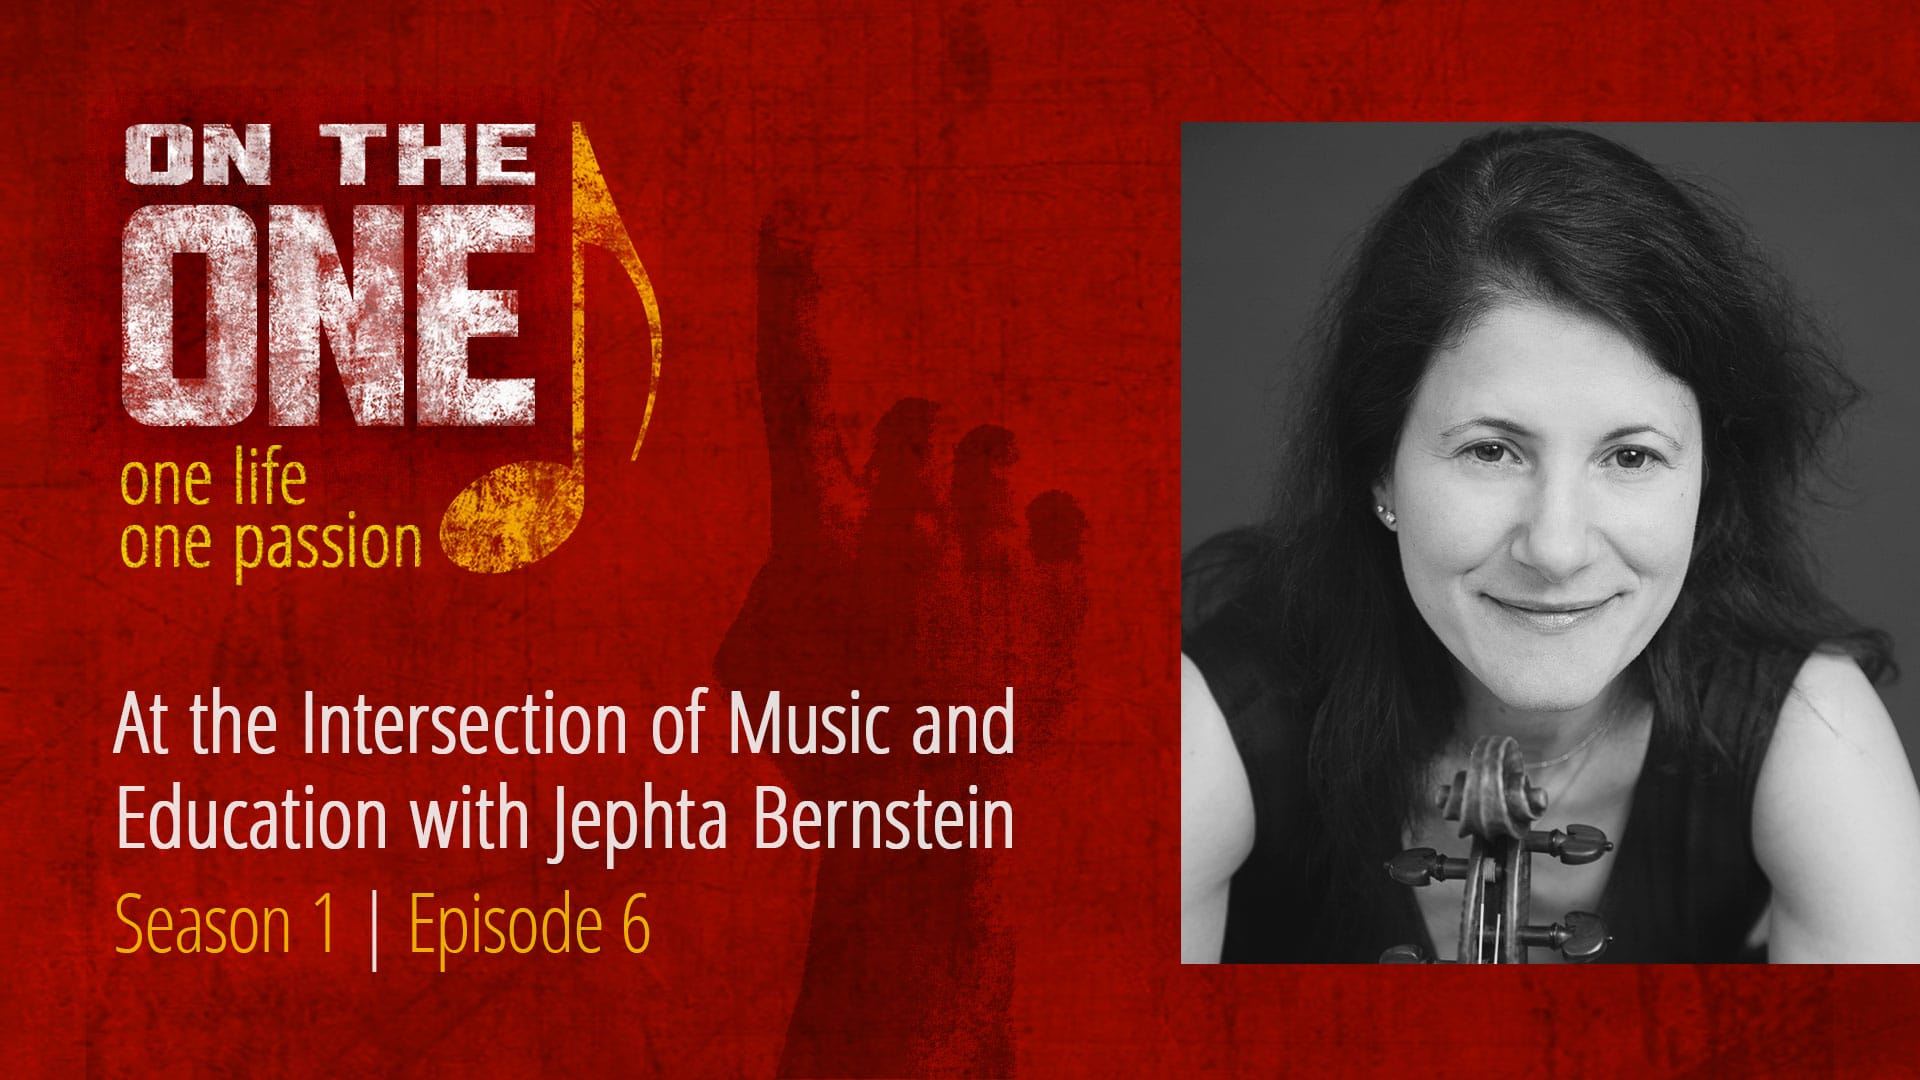 At the Intersection of Music and Education with Jephta Bernstein